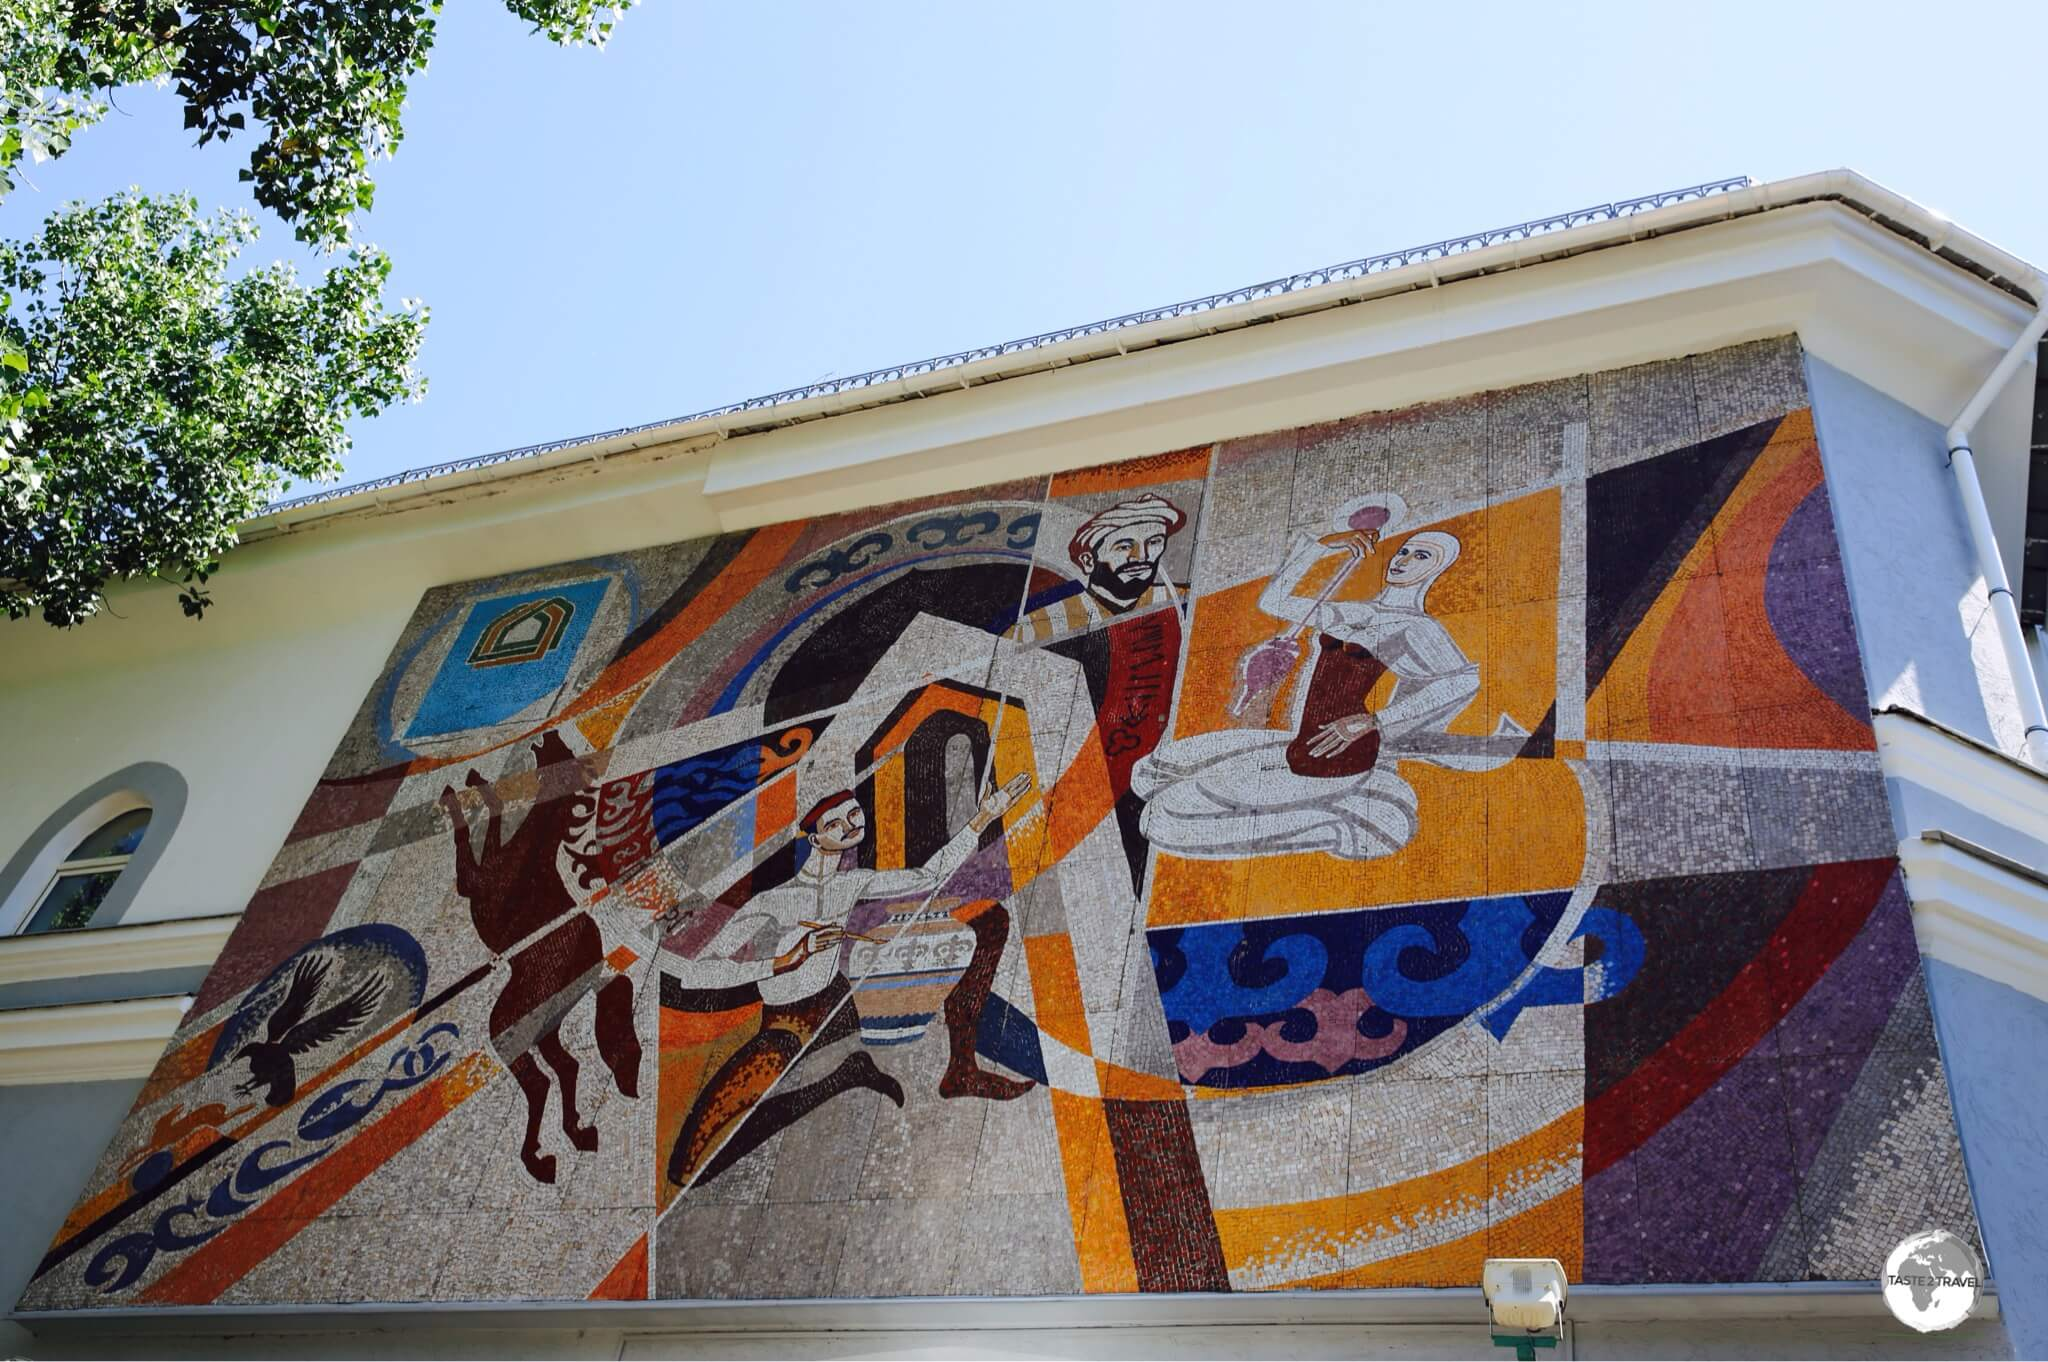 A mosaic dedicated the 'The Hunt' adorns the wall of the KIMEP University Great Hall on Abai avenue.